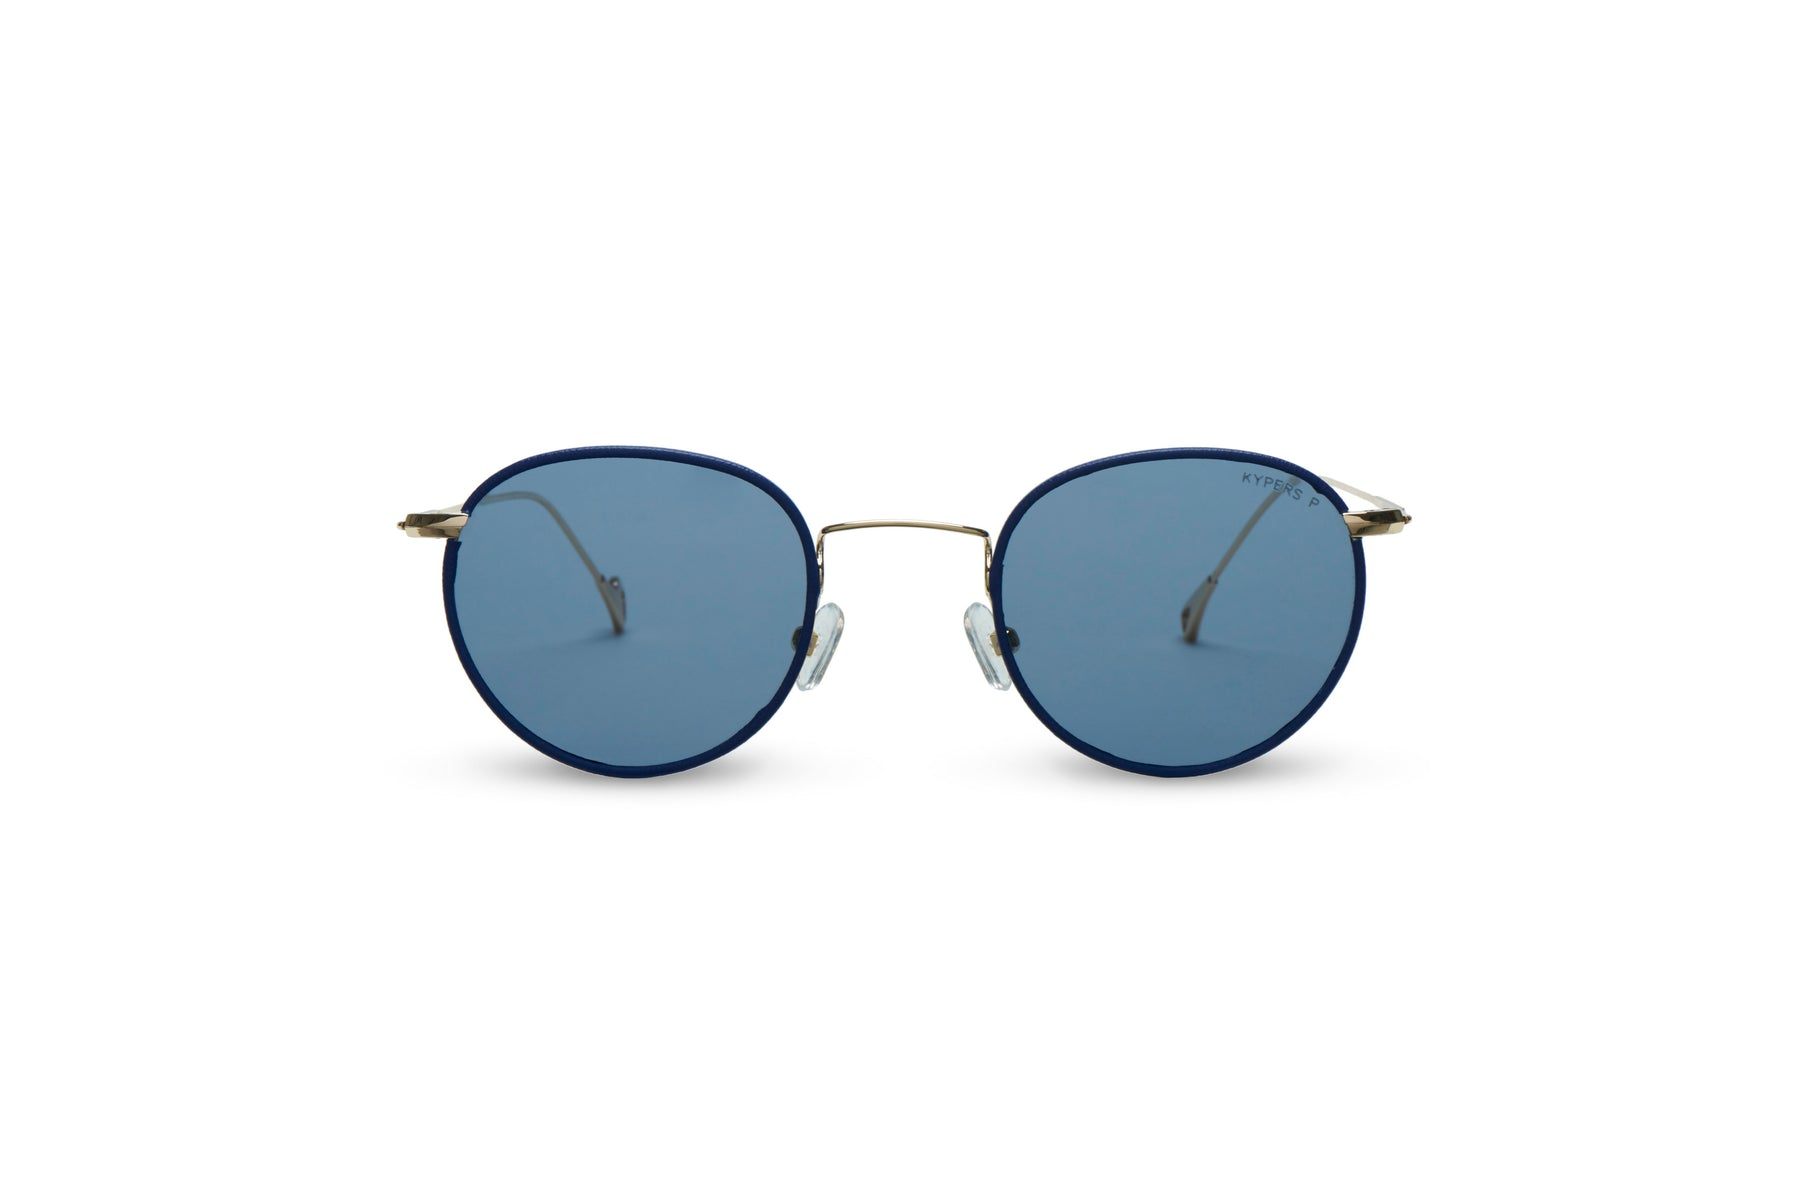 KYPERS sunglasses model GRAZY GY001 with gold & blue rim frame and blue lens